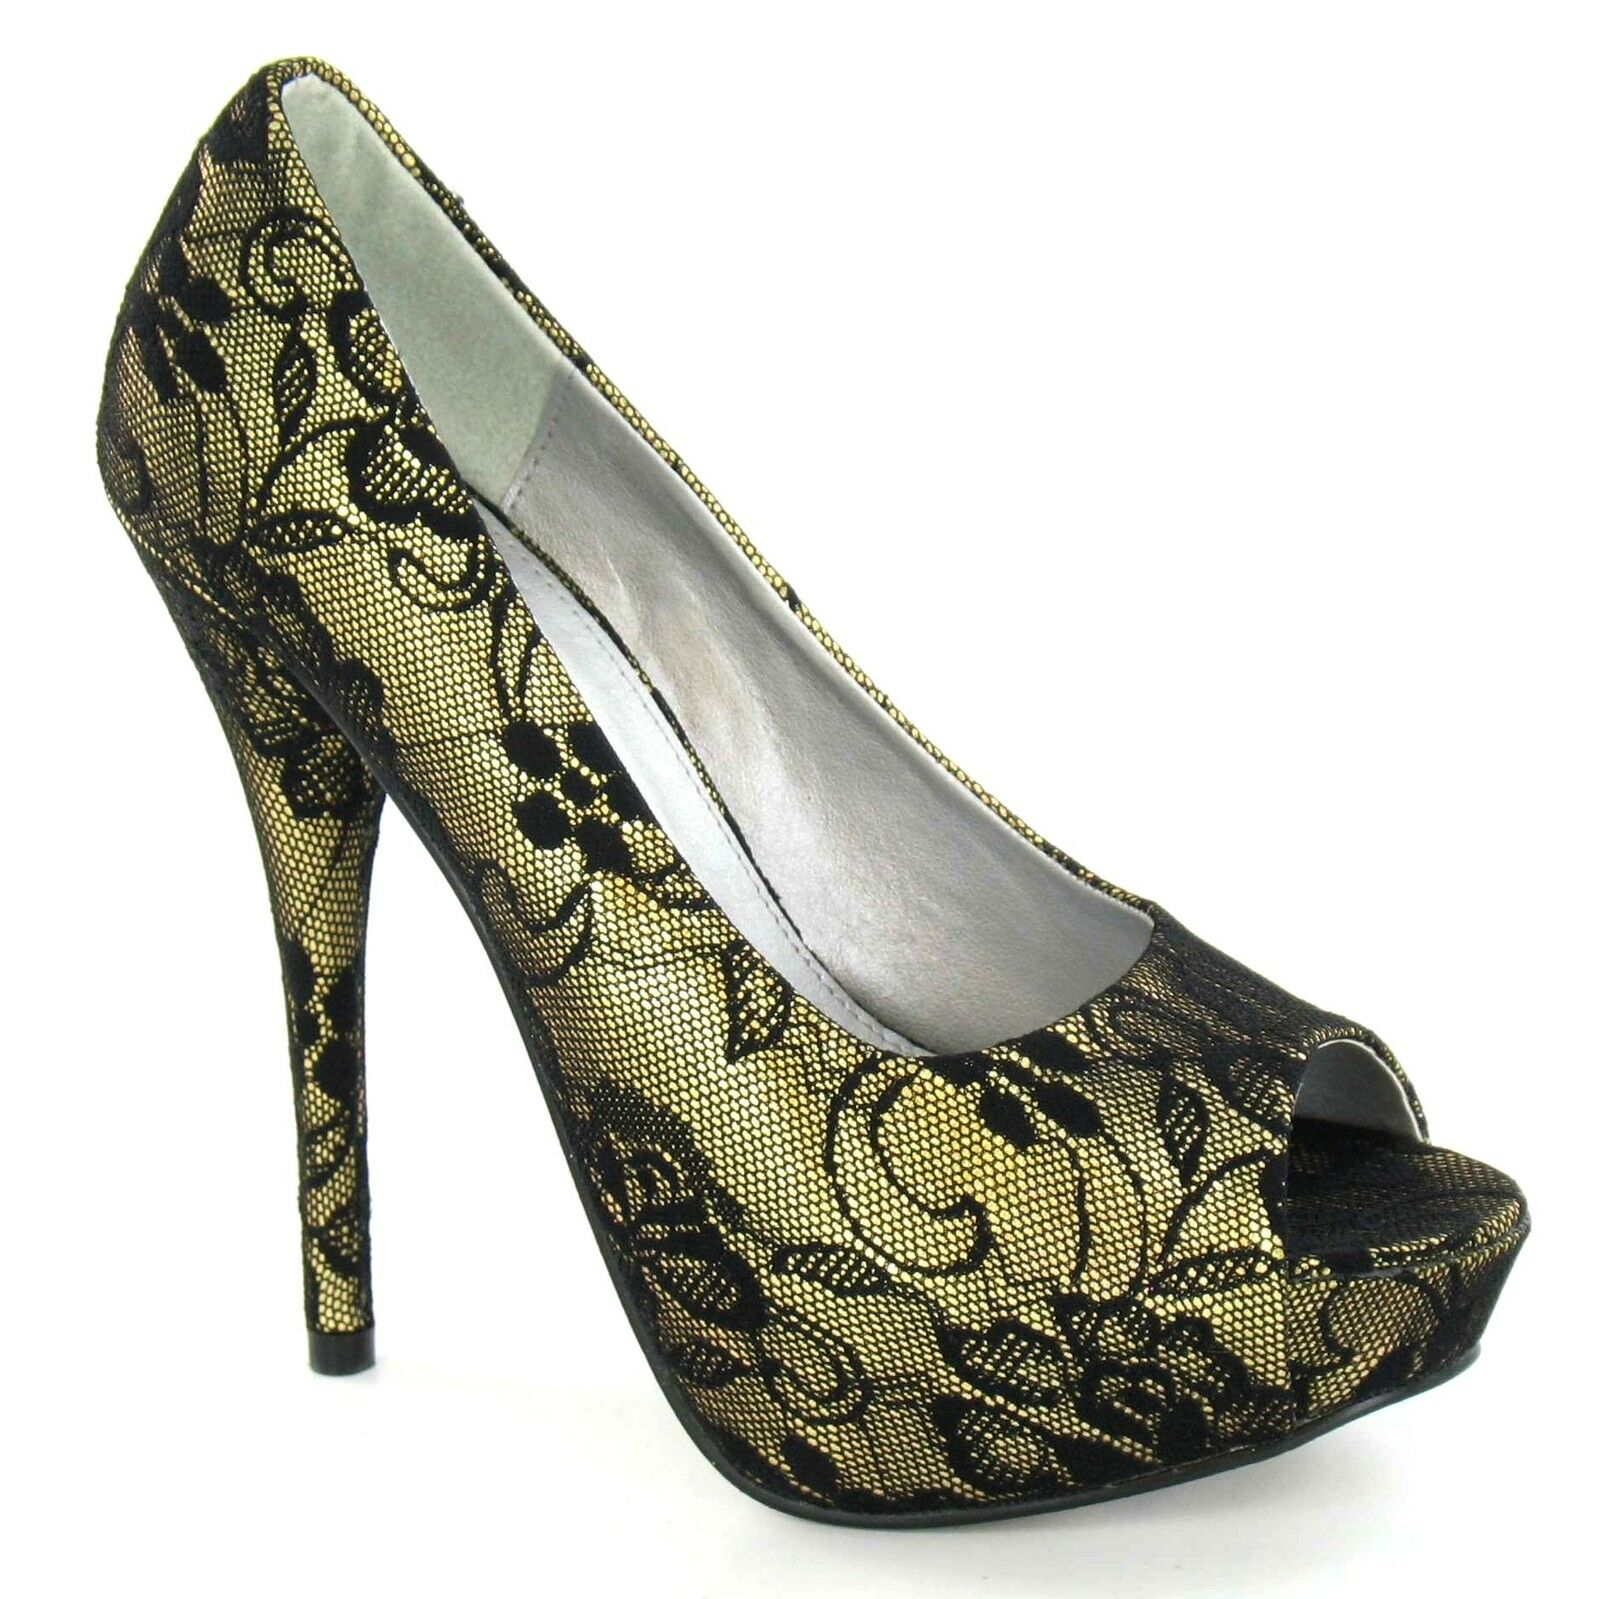 "Moda jest prosta i niedroga *SALE* Ladies Gold Lace Covered 5"" Stileto Heeled Court Shoes. Spot On F1759"